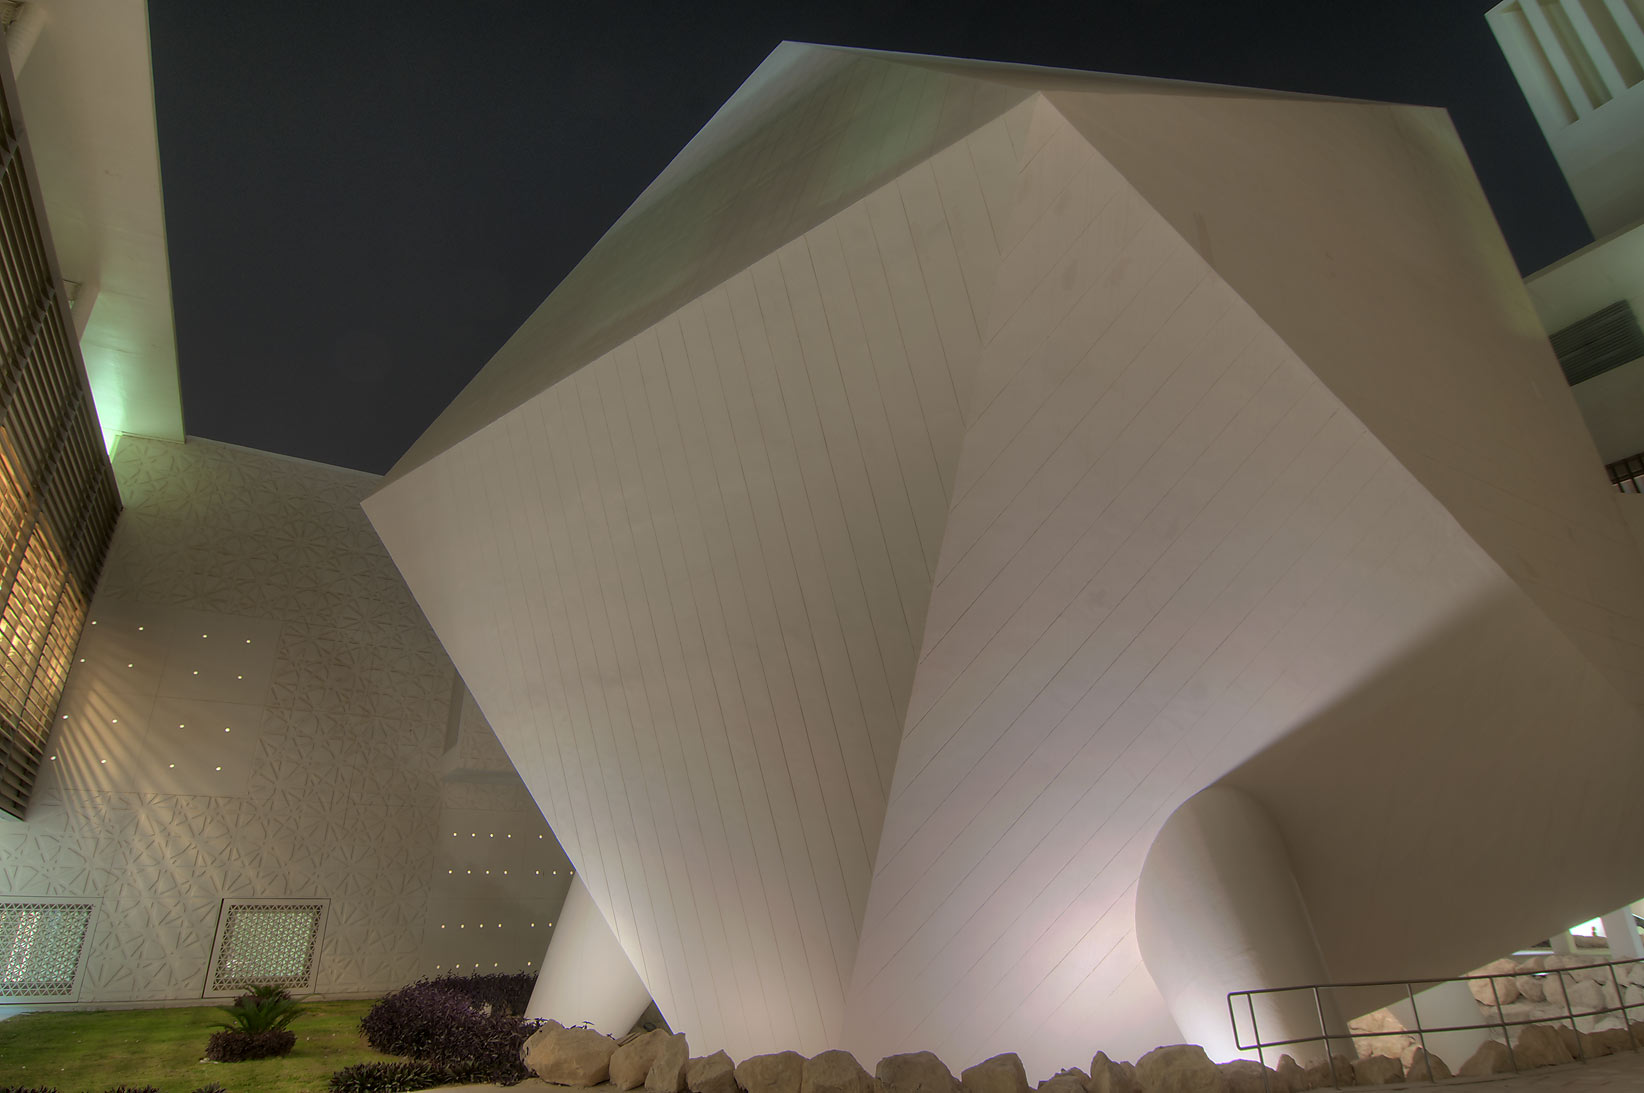 Icosahedron lecture hall of Weill Cornell Medical...Education City at evening. Doha, Qatar